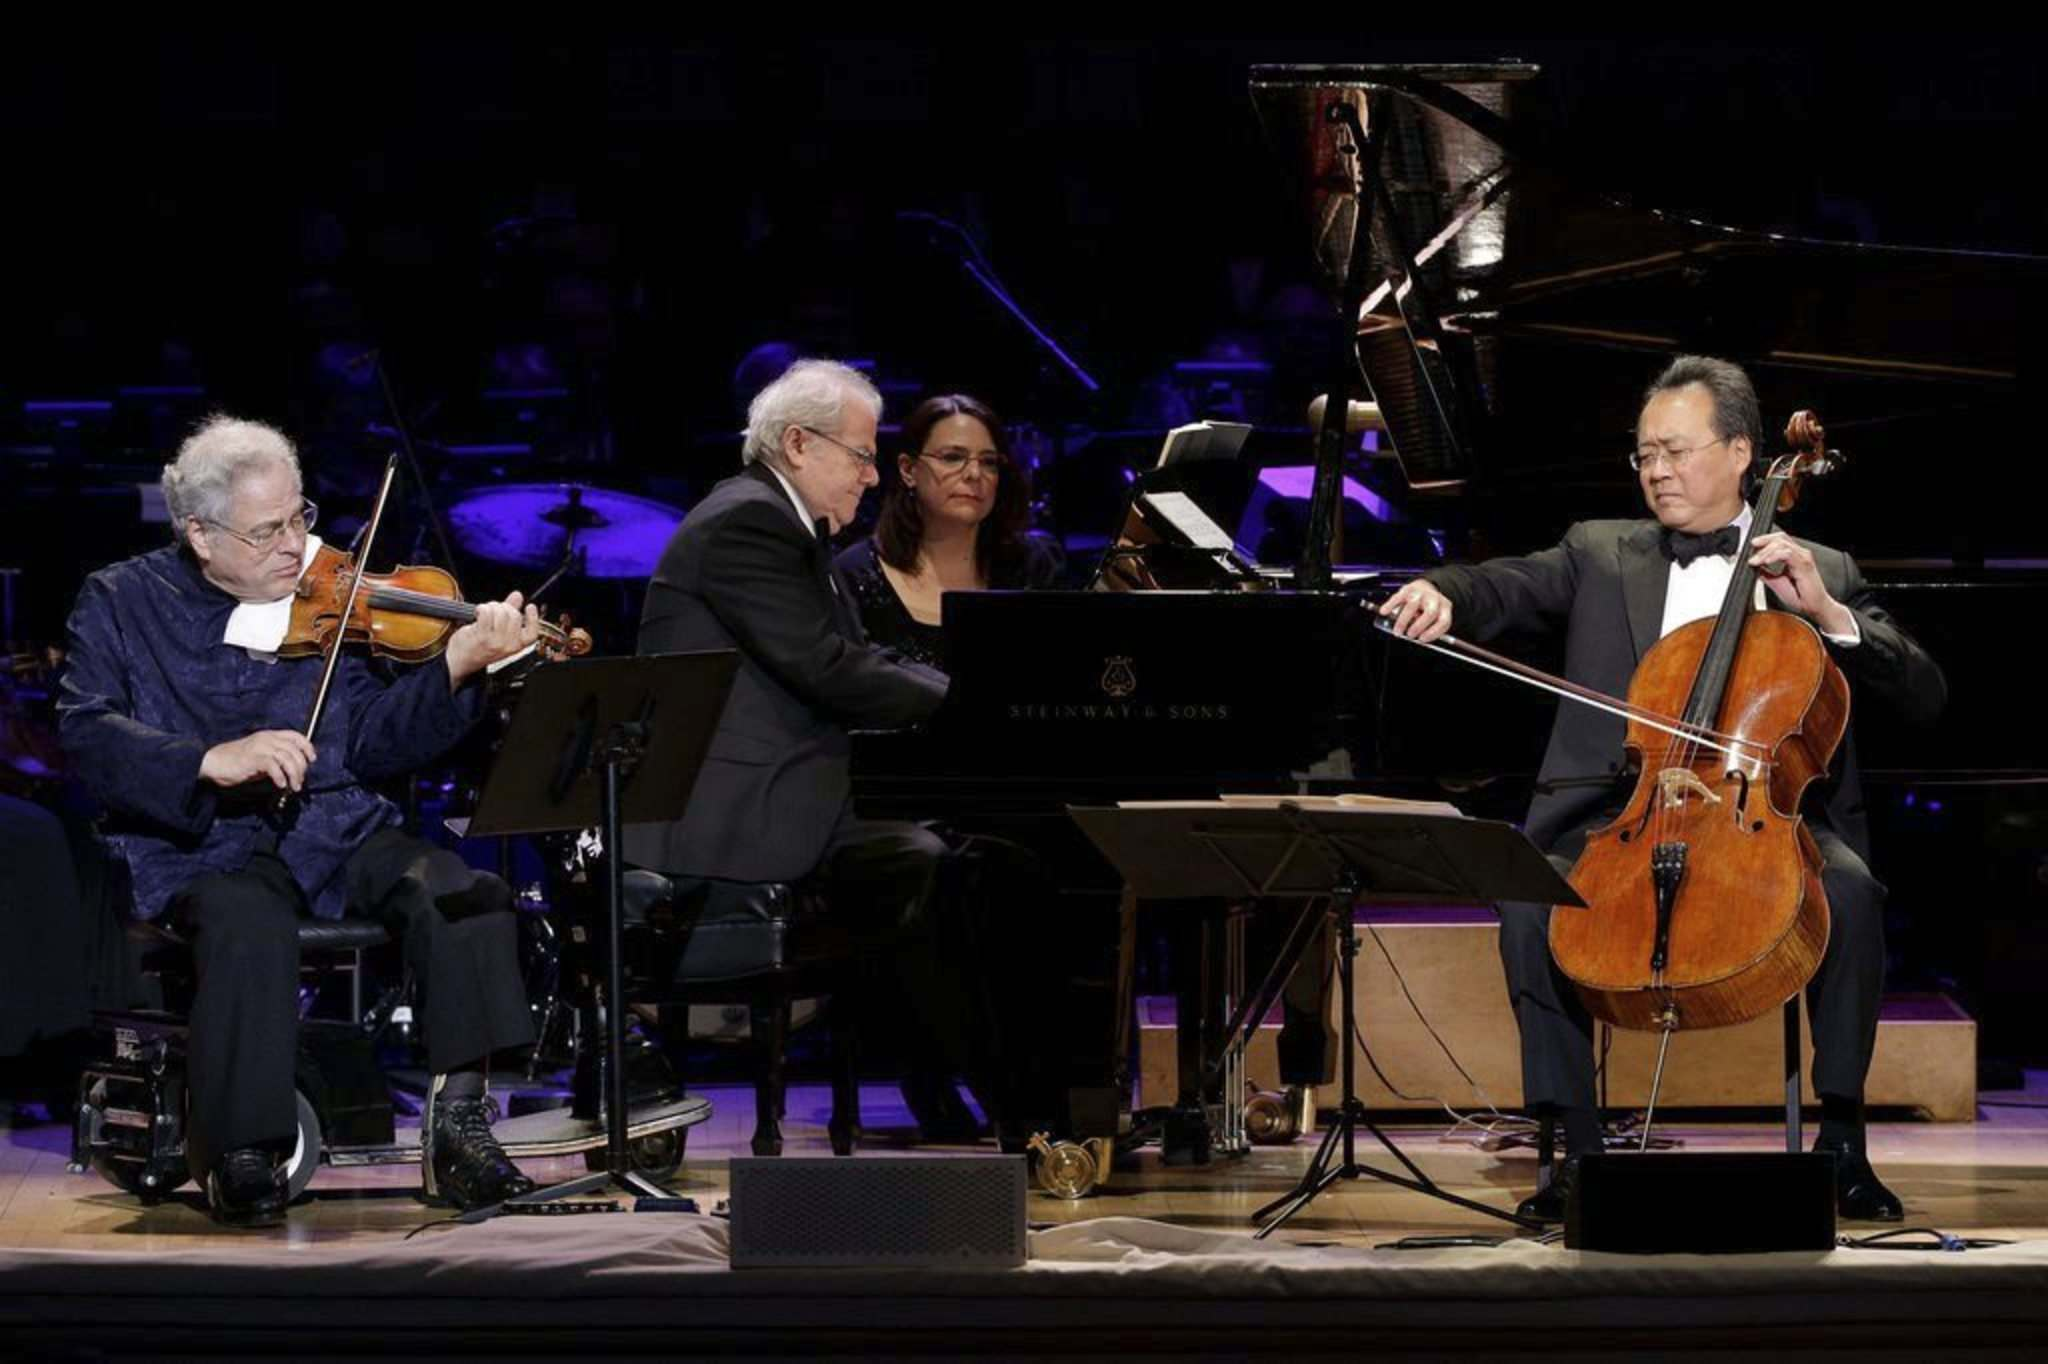 Julie Jacobson / The Associated Press files</p><p>Itzhak Perlman (from left), Emanuel Ax and Yo-Yo Ma perform together at Carnegie Hall's 125th Anniversary Concert in New York.</p></p>